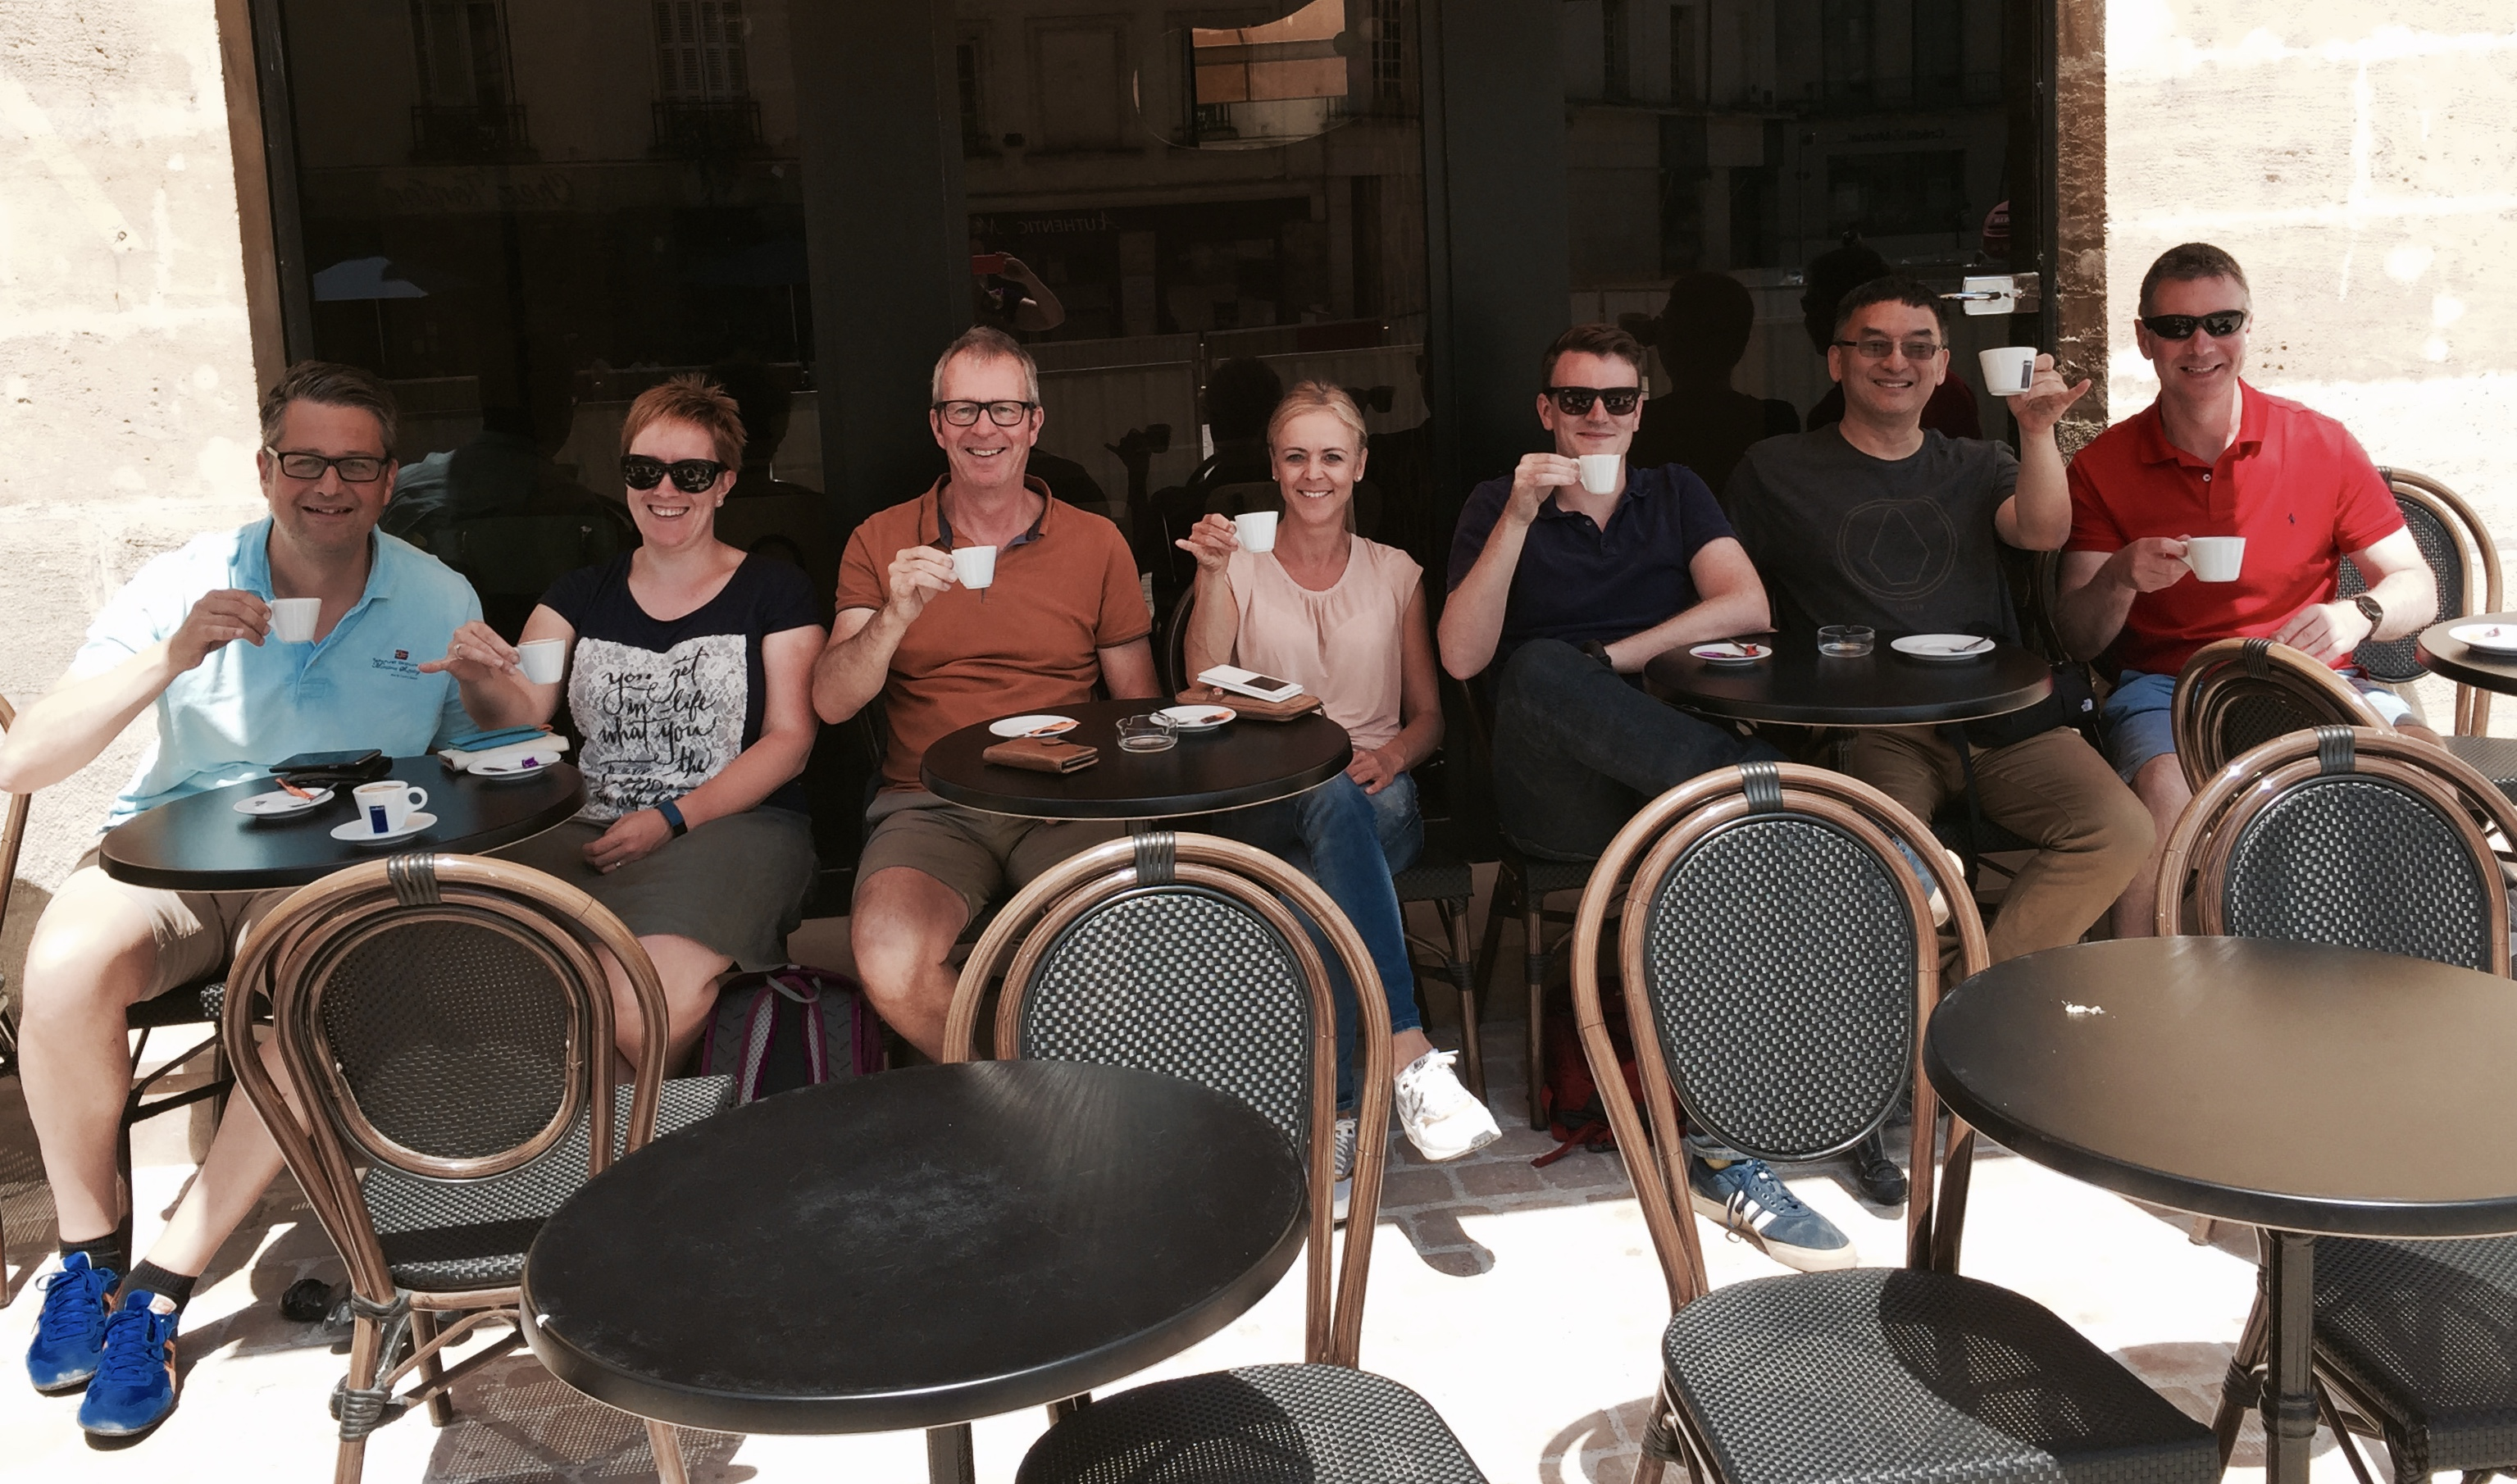 Coffee break at CLE a French language school